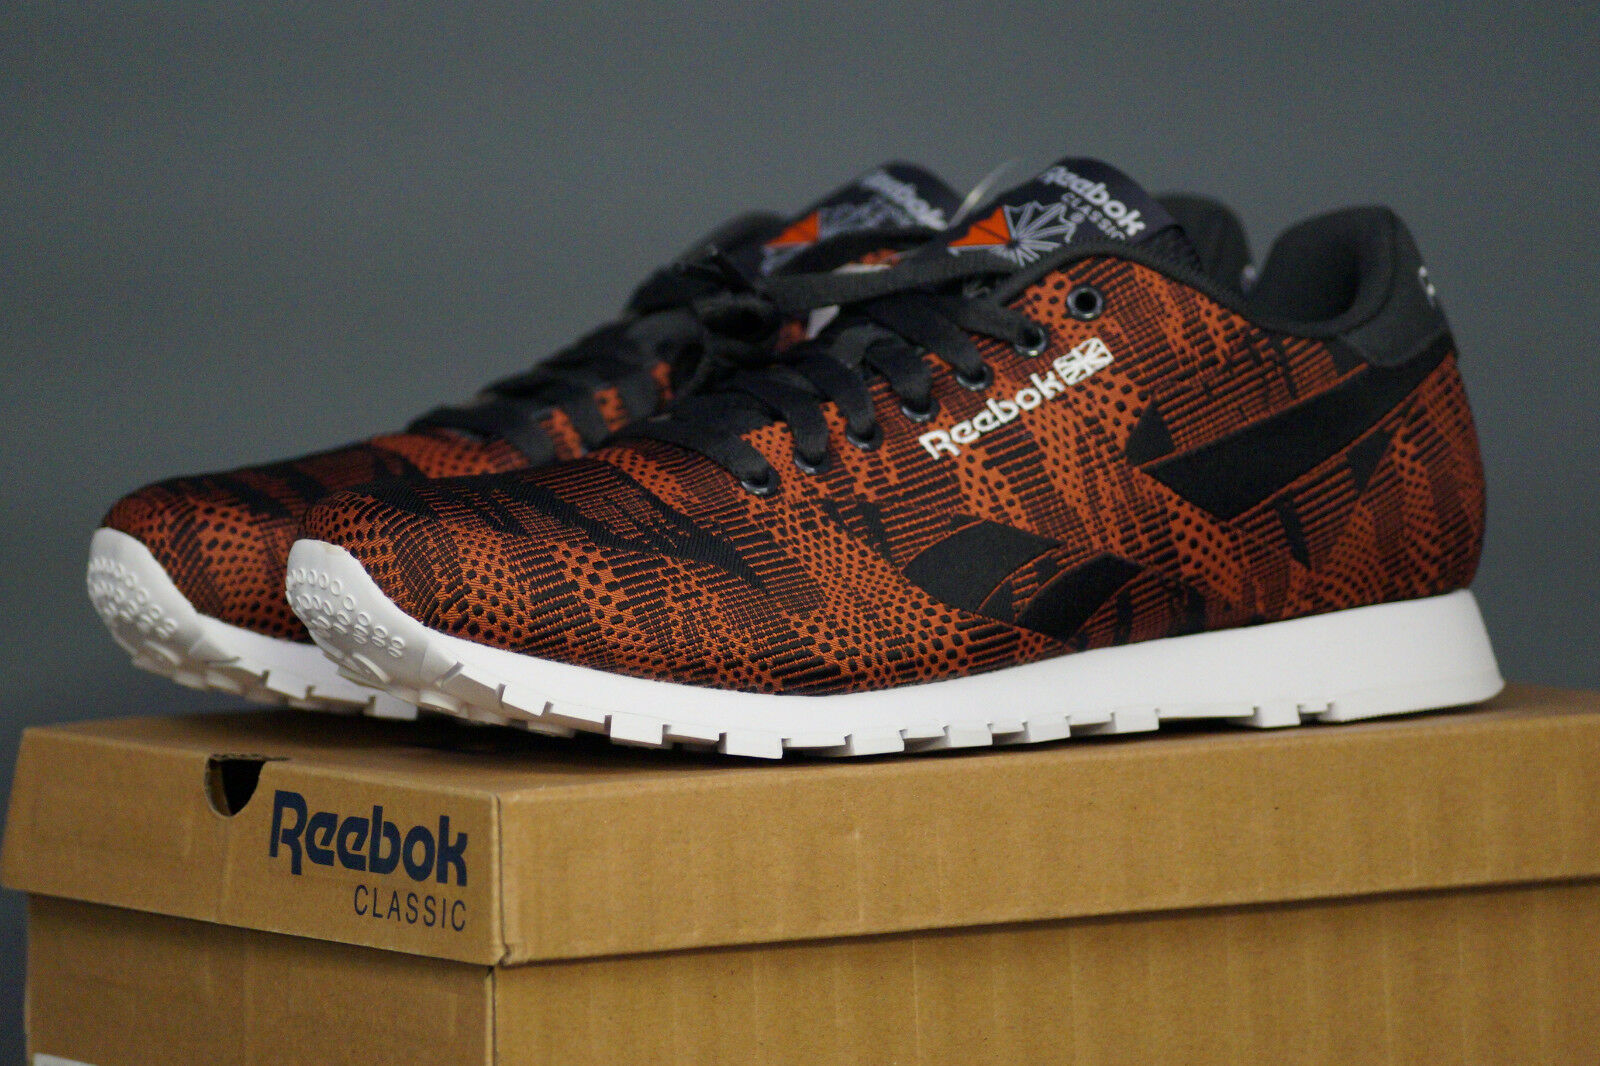 REEBOK Classic CL Runner Jacquard TC EU 42.5 UK 8.5 pop-energy naranja negro